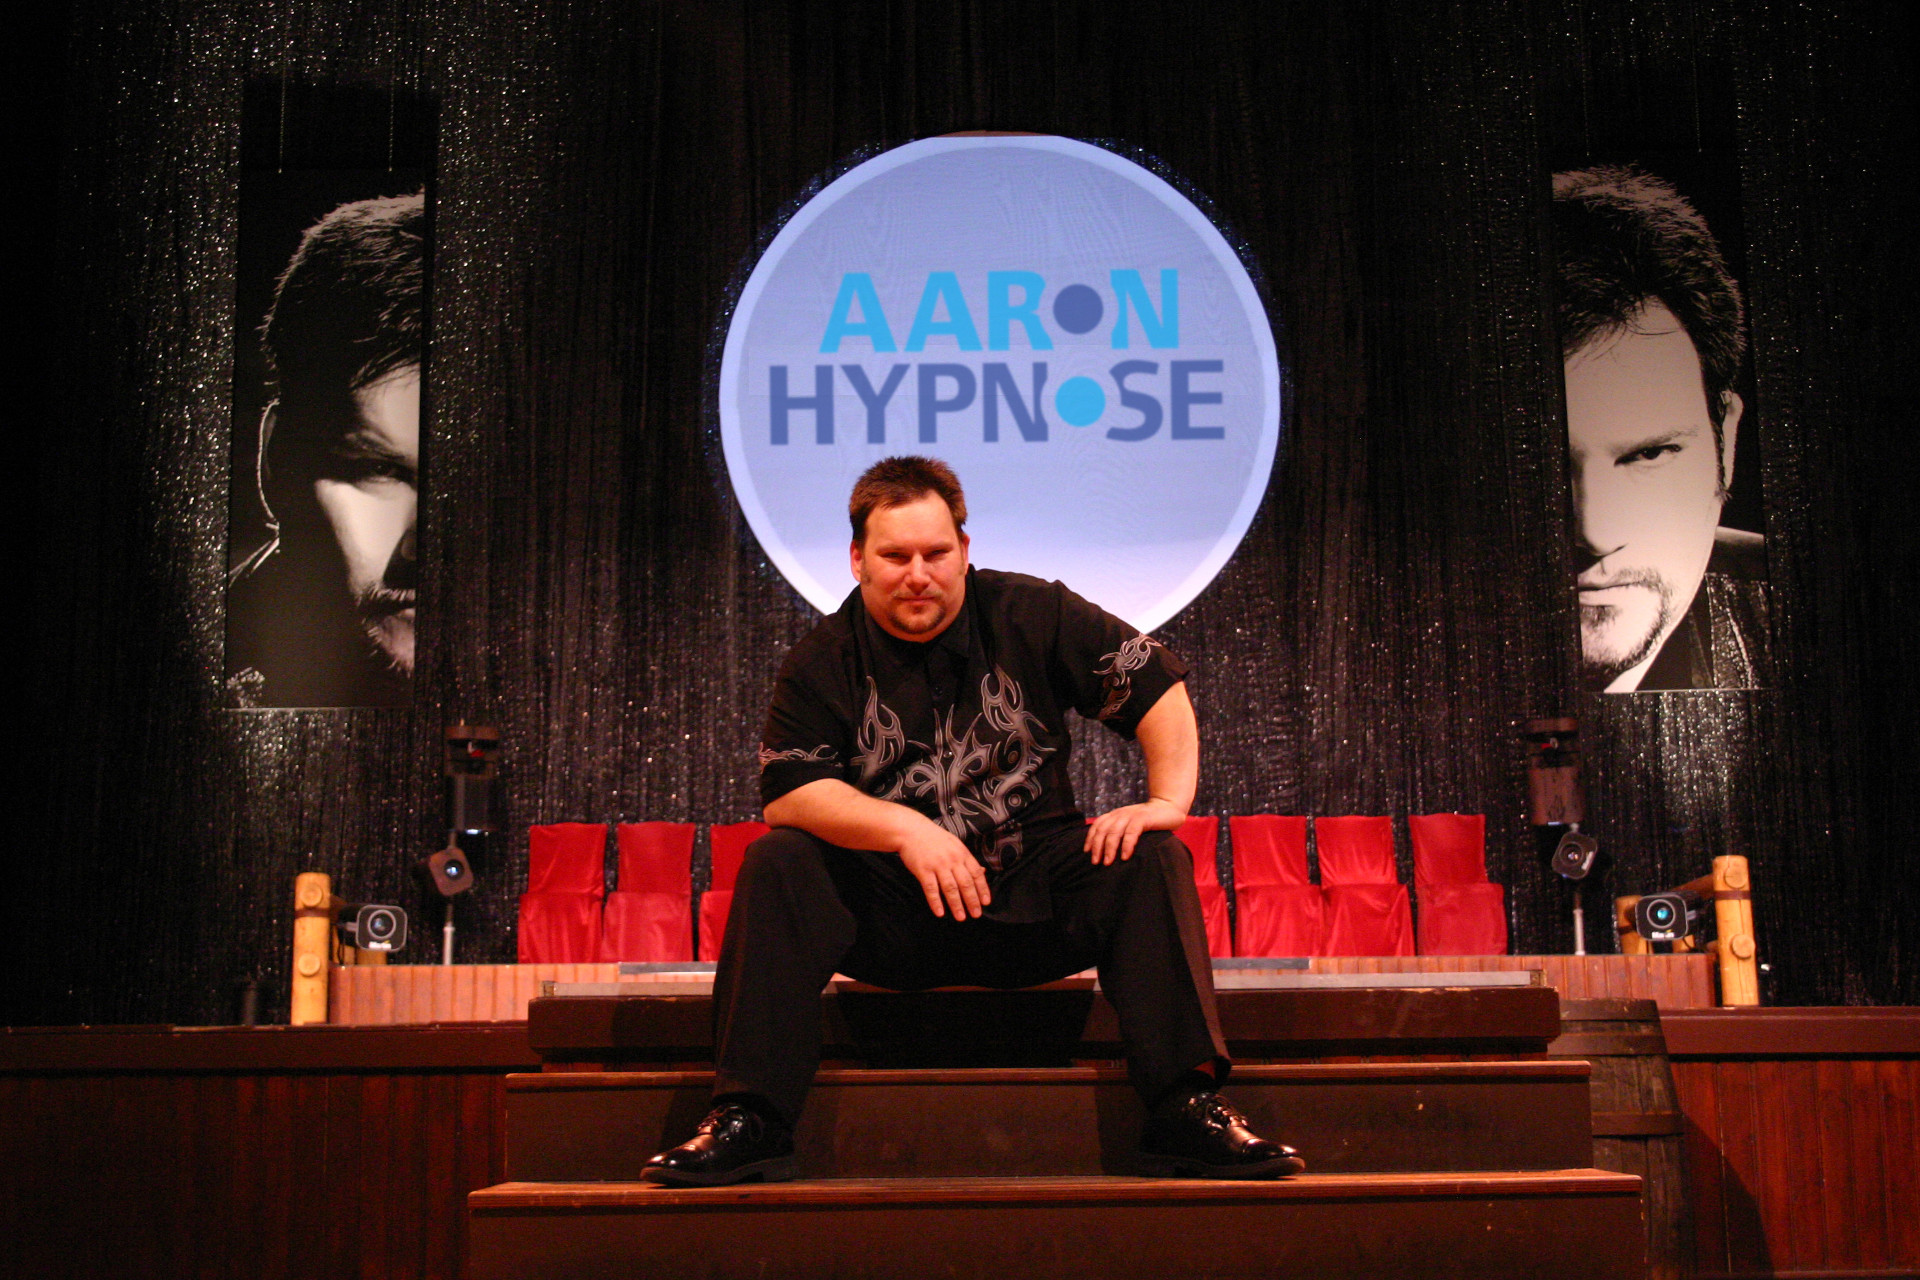 aaron hypnose hypnoseshow